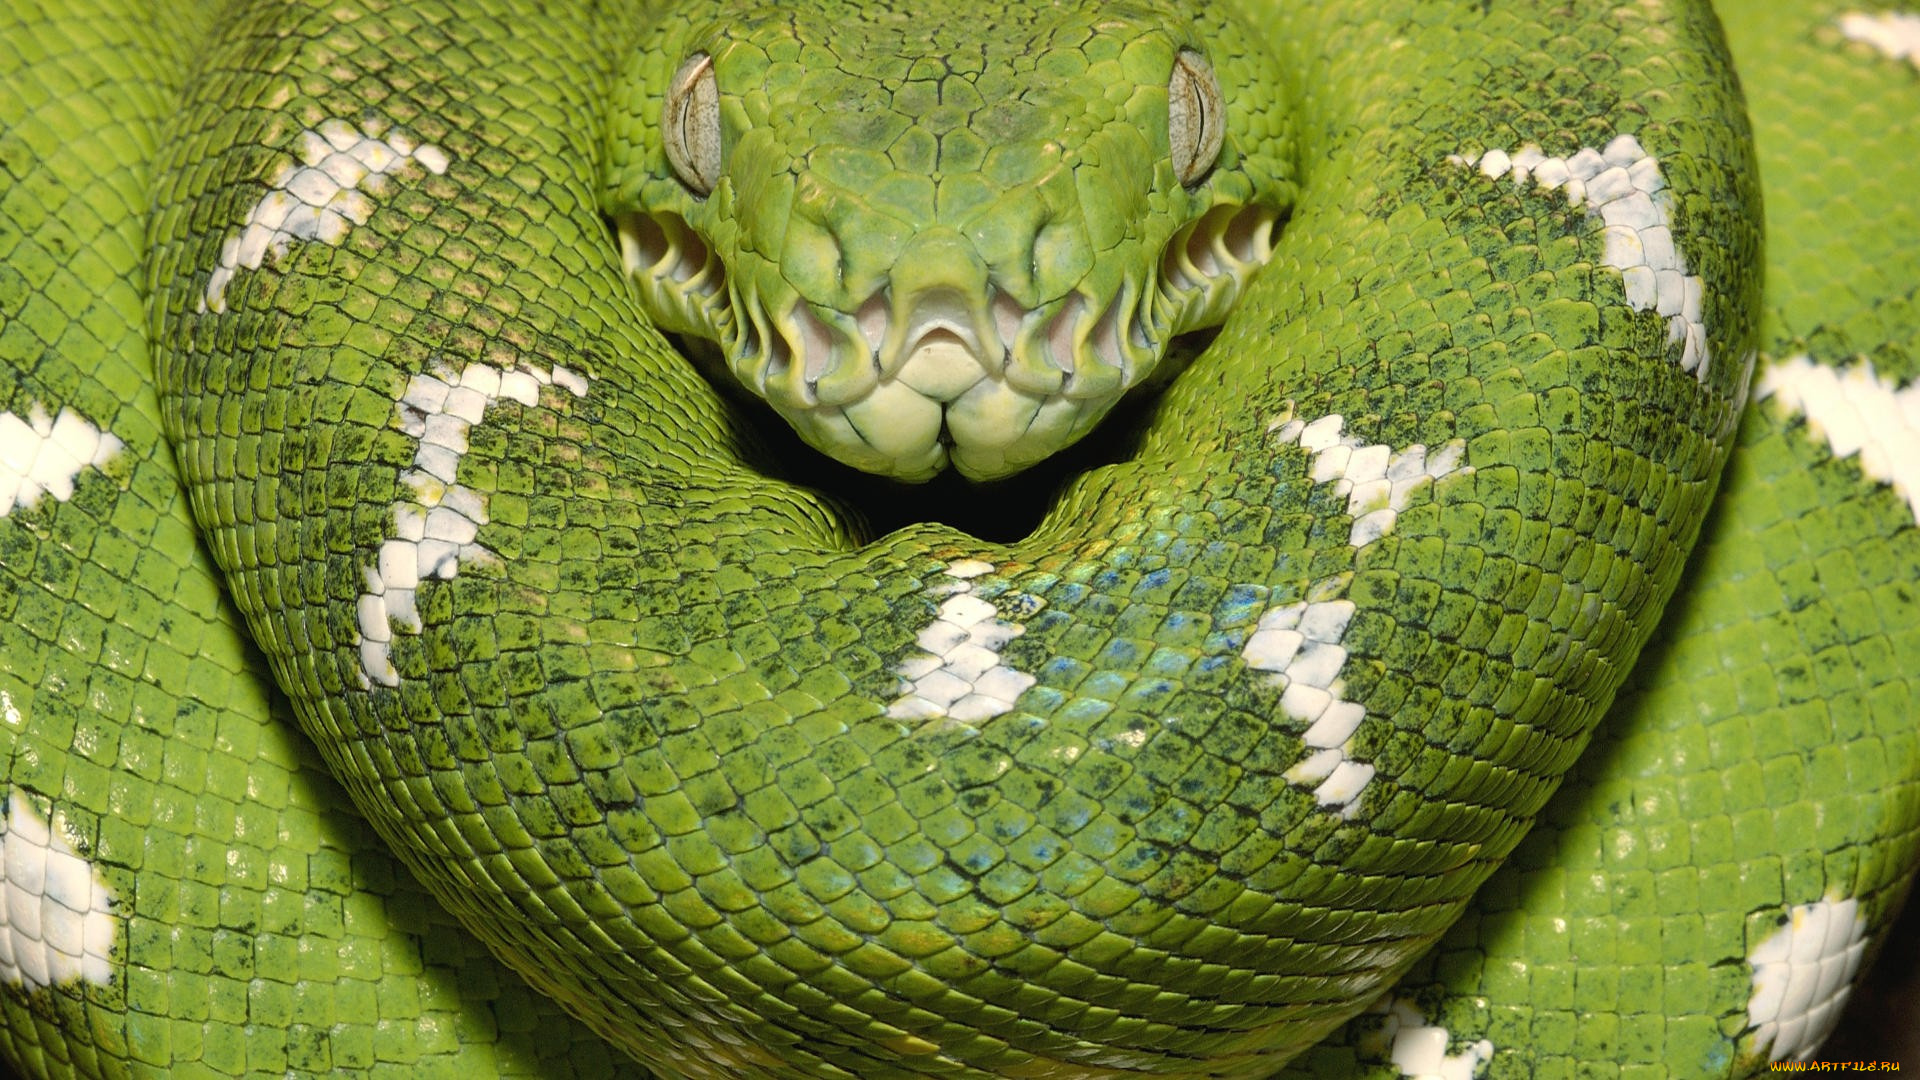 The green tree snake is slender with a whiplike tail and a head that is slightly wider than the body Its eyes are large with rounded pupils